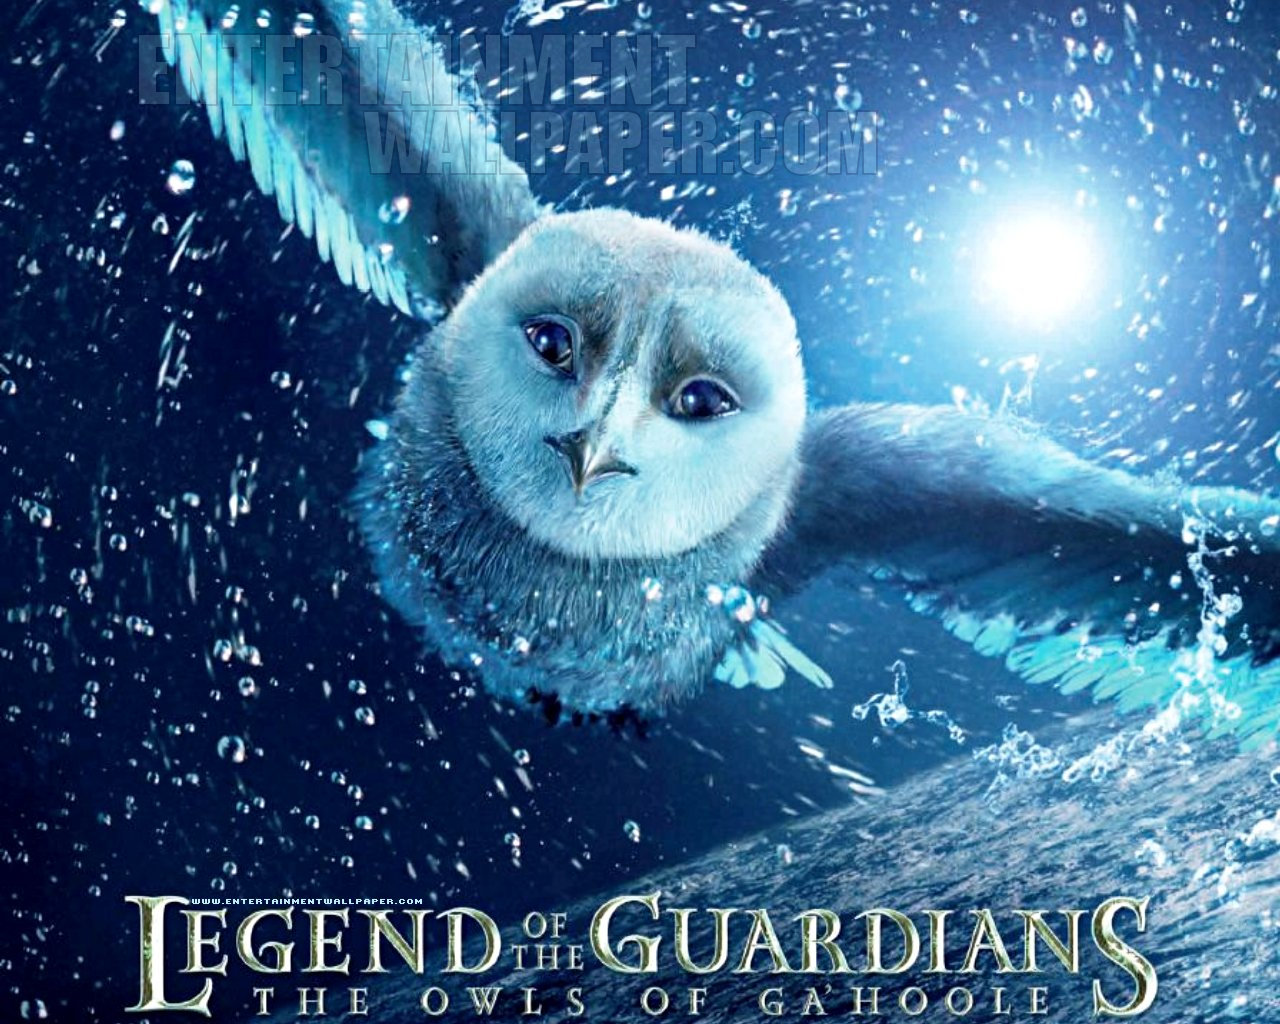 Legend Of The Guardians The Owls Of GaHoole 2010